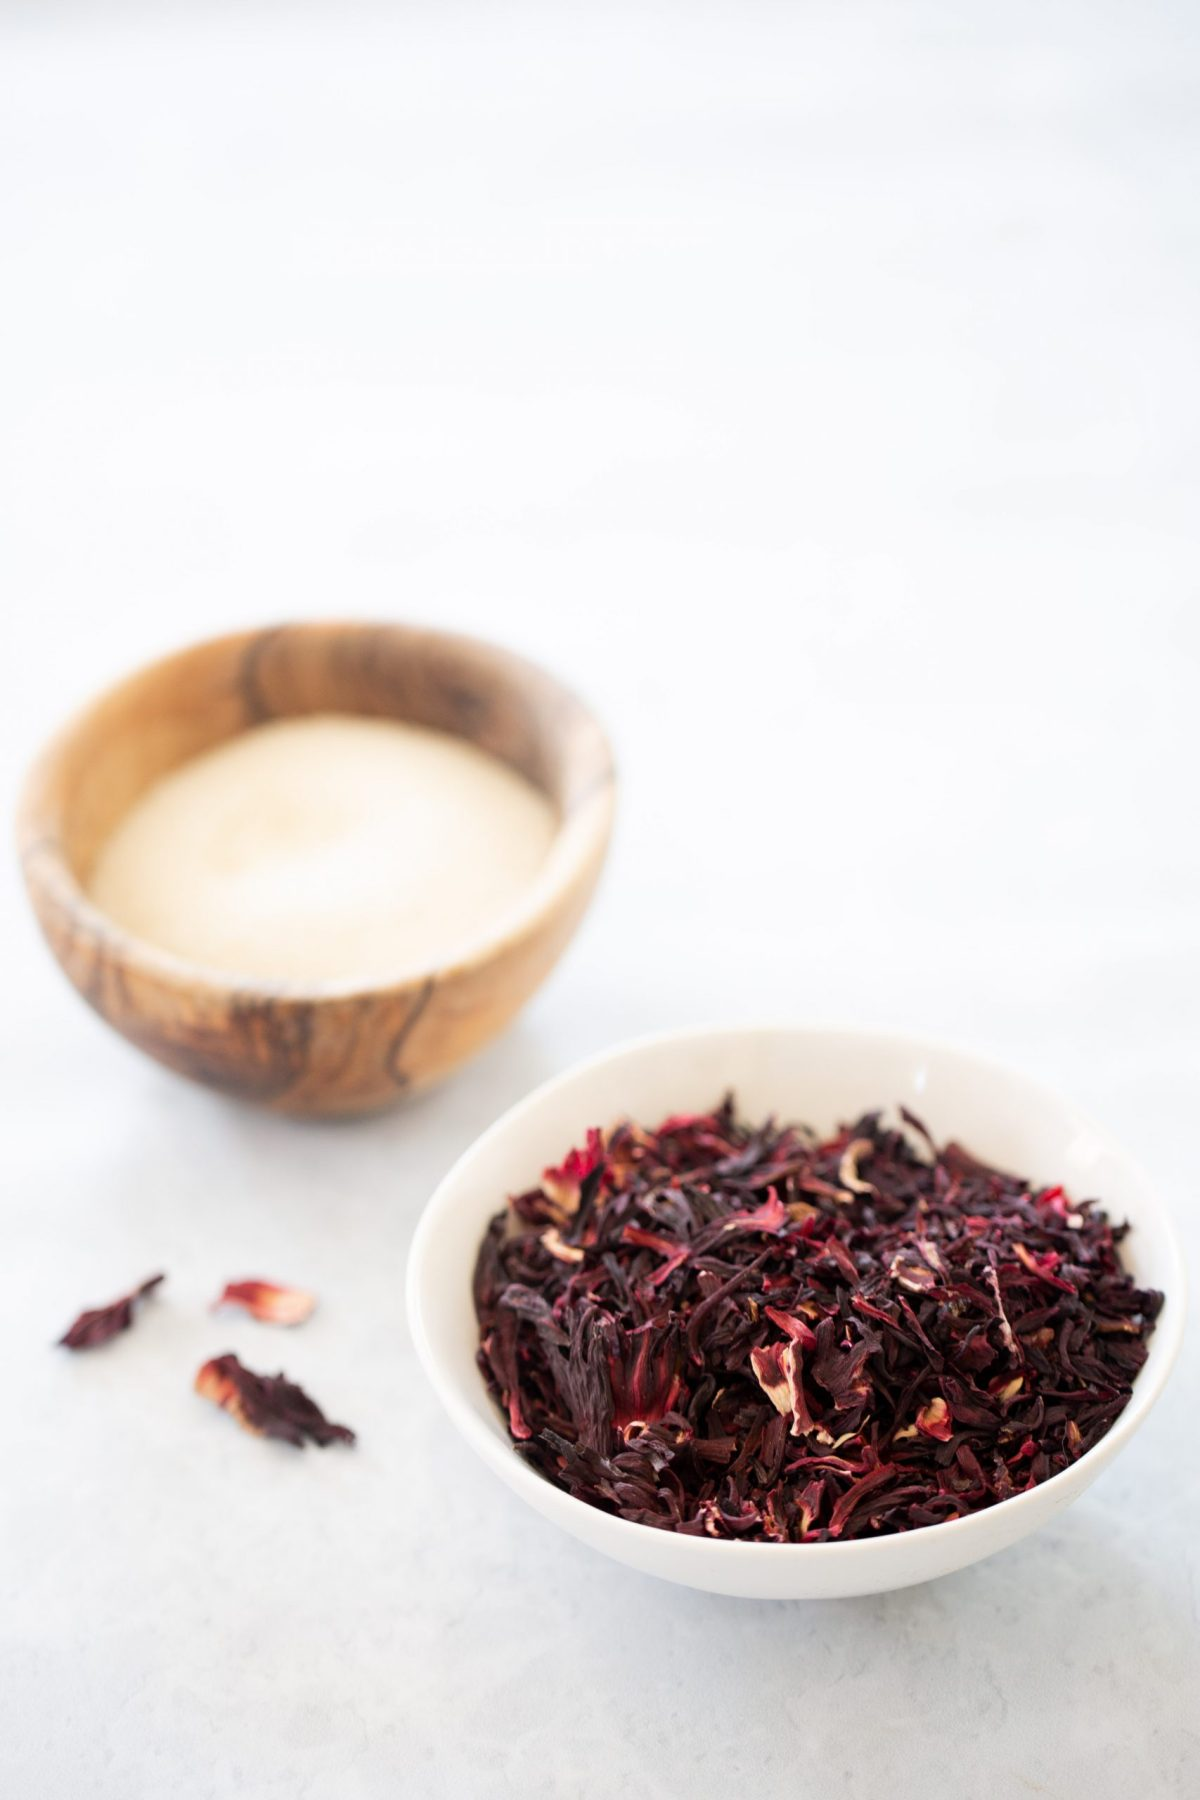 a bowl with dried hibiscus flowers